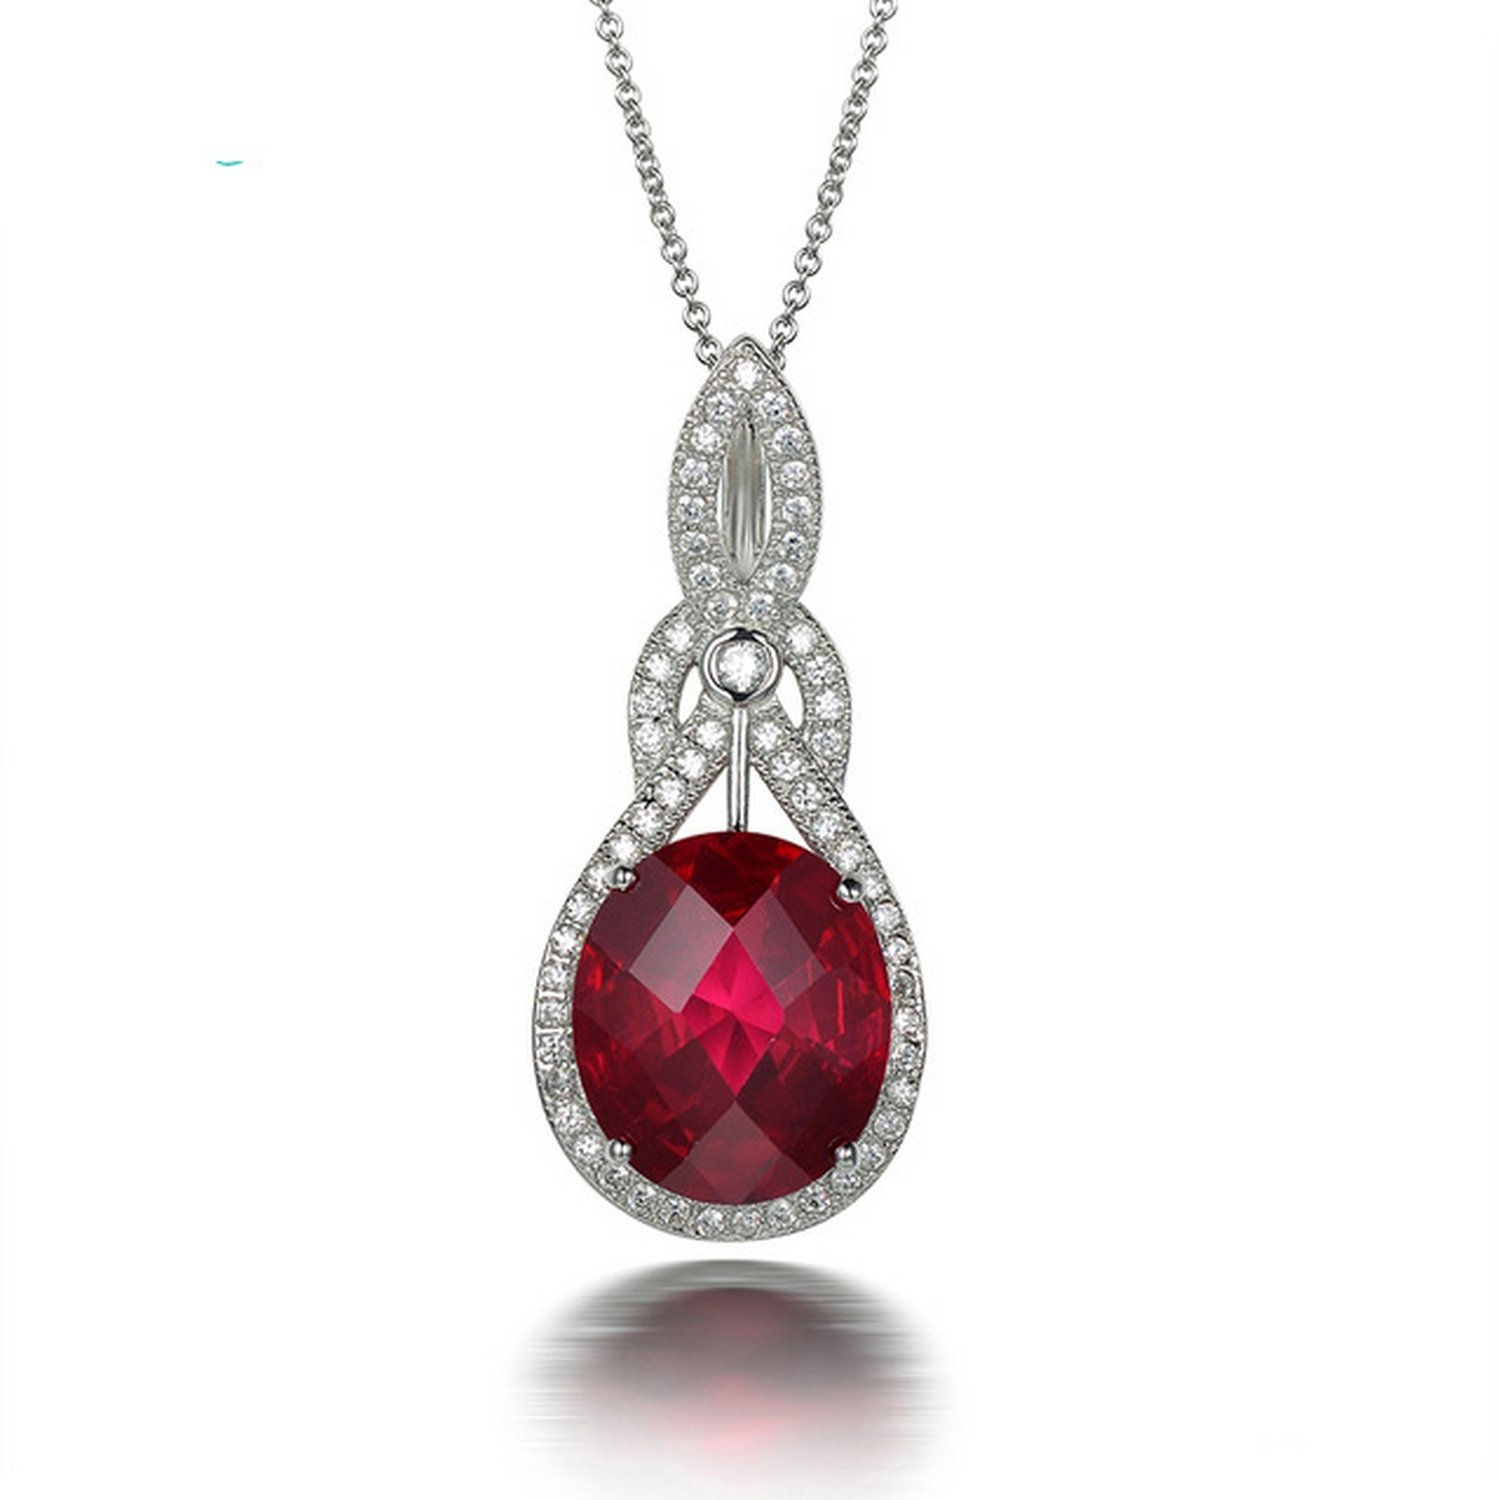 CS-DB Jewelry Silver 7.98ct Ruby Chain Charm Pendants Necklaces